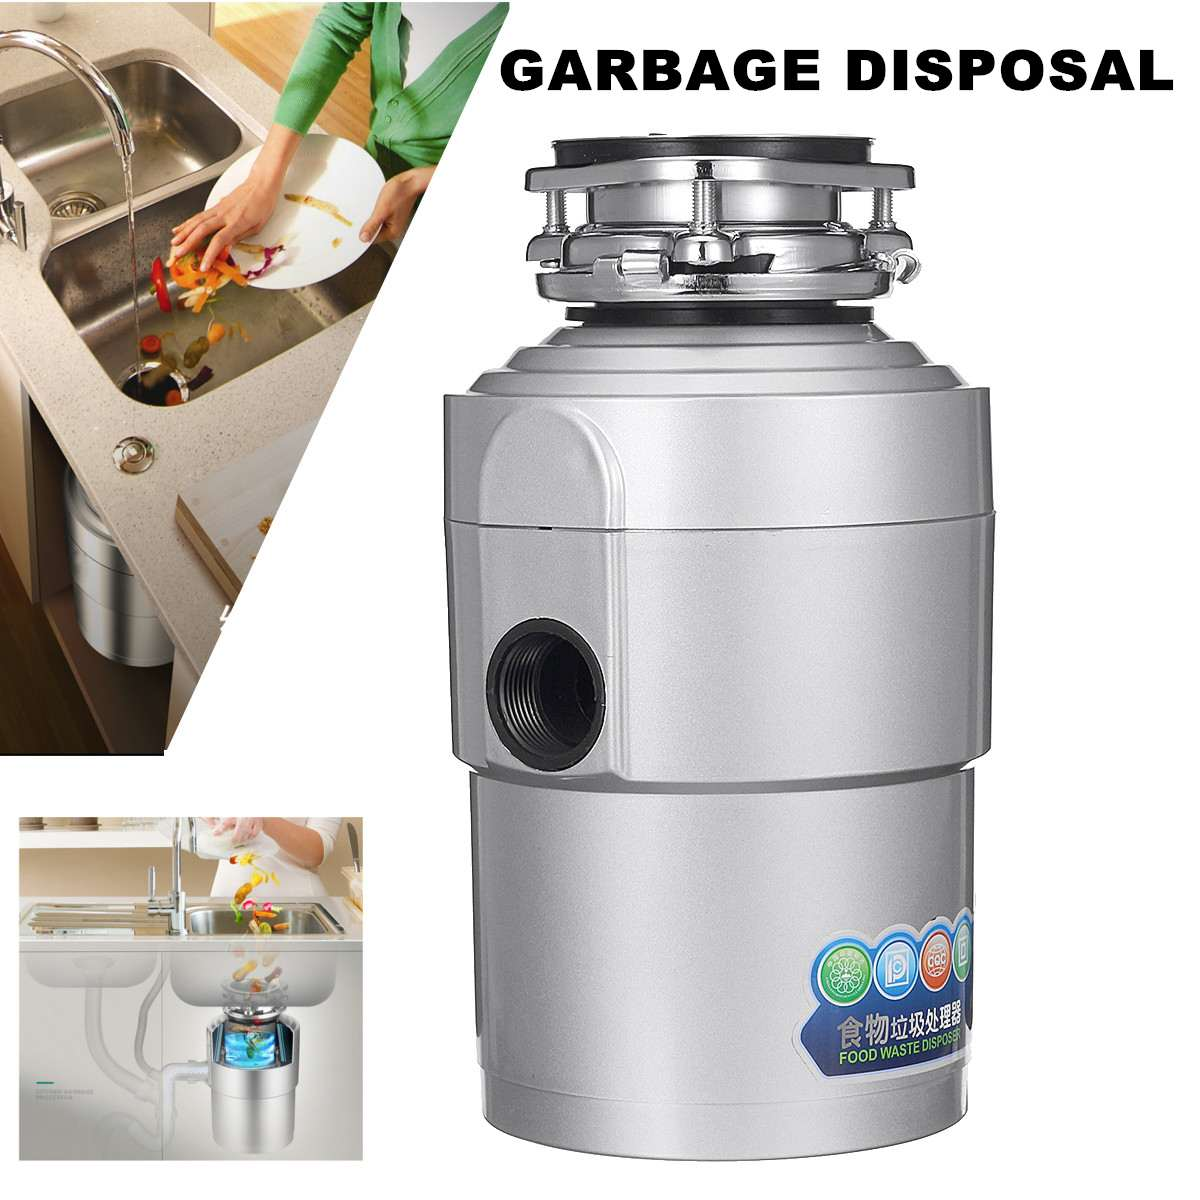 2L Garbage Disposal Continuous Feed Food Waste Disposer Machine 2500R/MIN Home Kitchen Sink Accessories Fixture 220V 630W 1HP